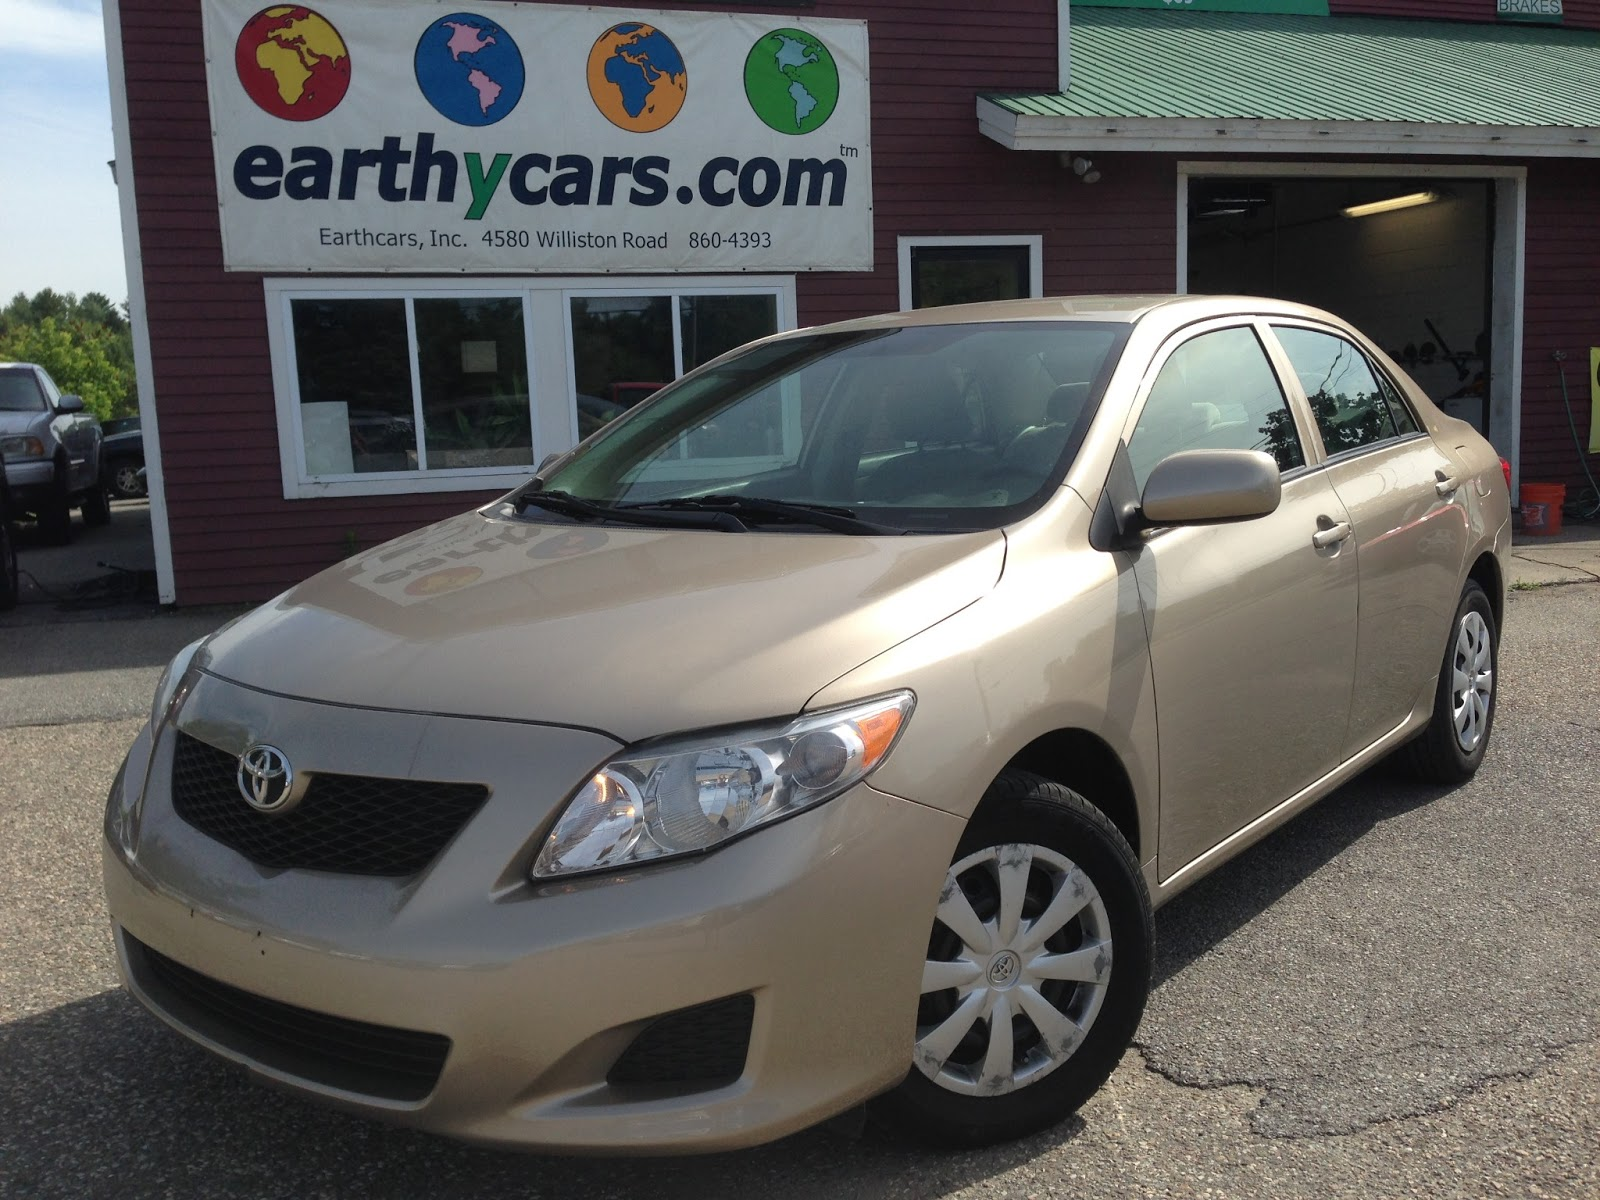 Earthy car of the week gold 2009 toyota corolla le